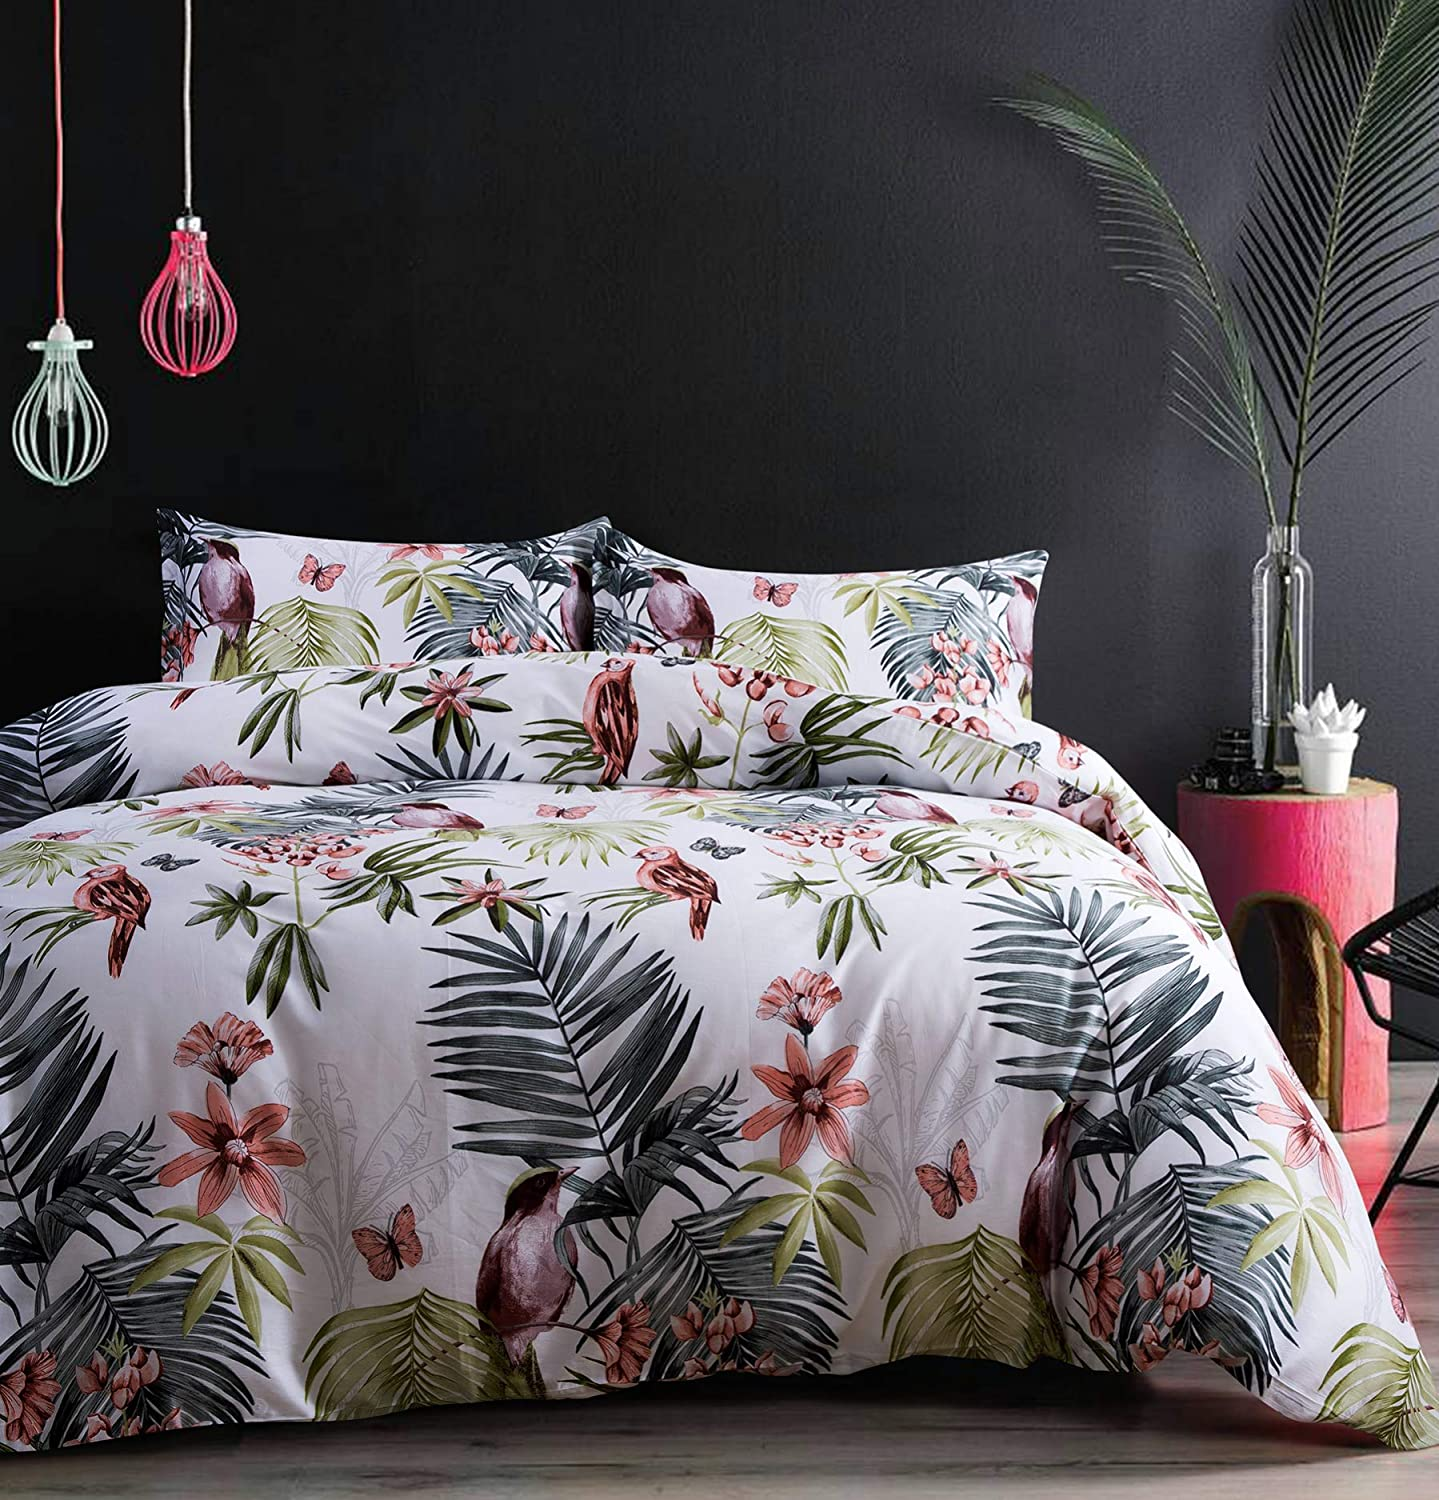 Eikei Palm Leaves Duvet Cover and Pillowcases Set Tropical Exotic Island Flowers Trees Branches Paradise Birds Bedding Jungle Plants Modern Botanical Print Long Staple Cotton (White, Super King)